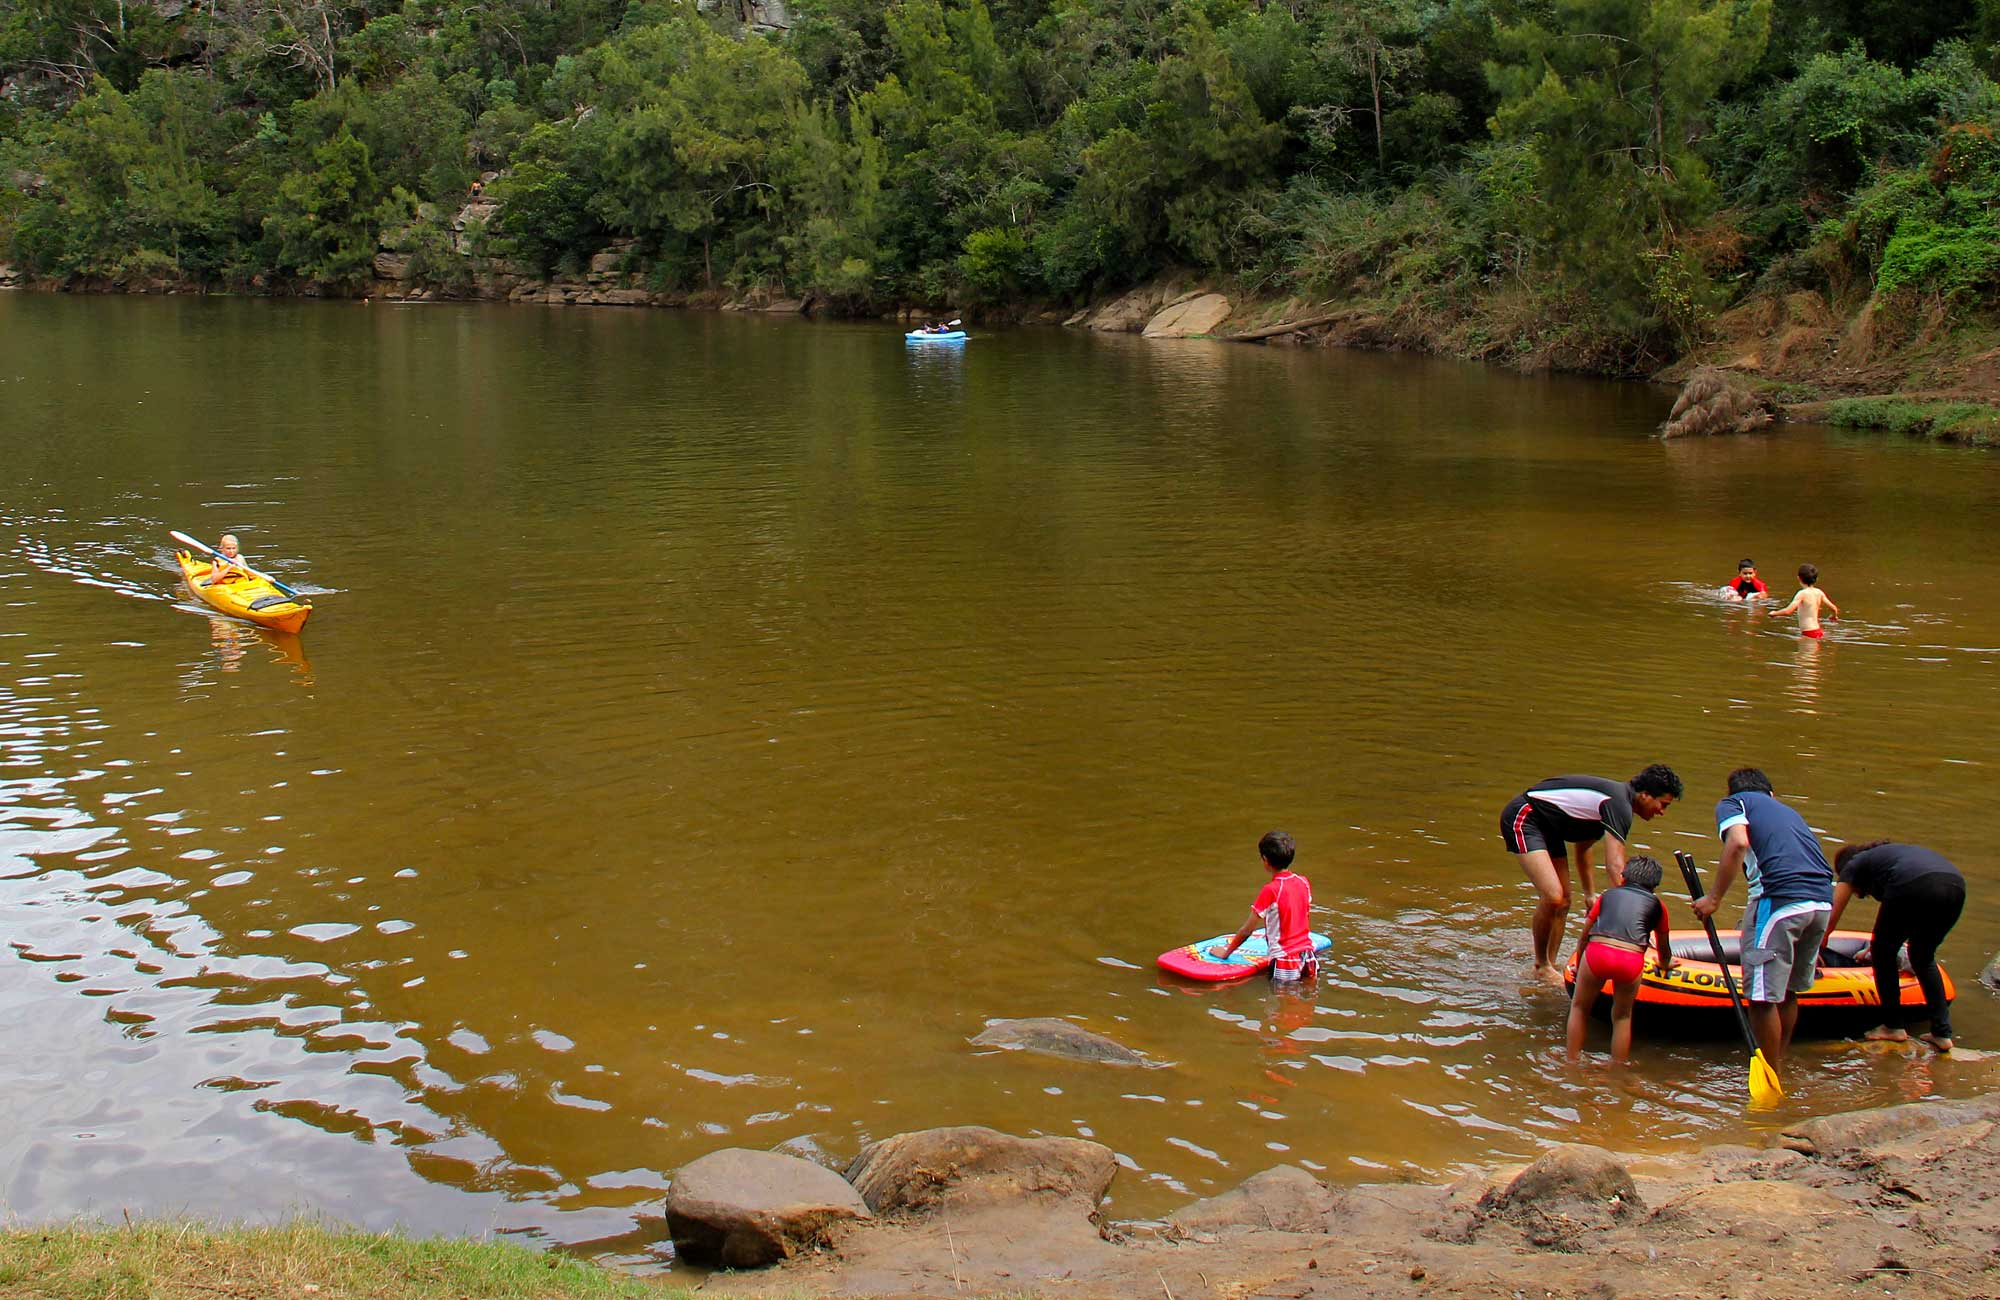 People swimming in the river. Photo:John Yurasek